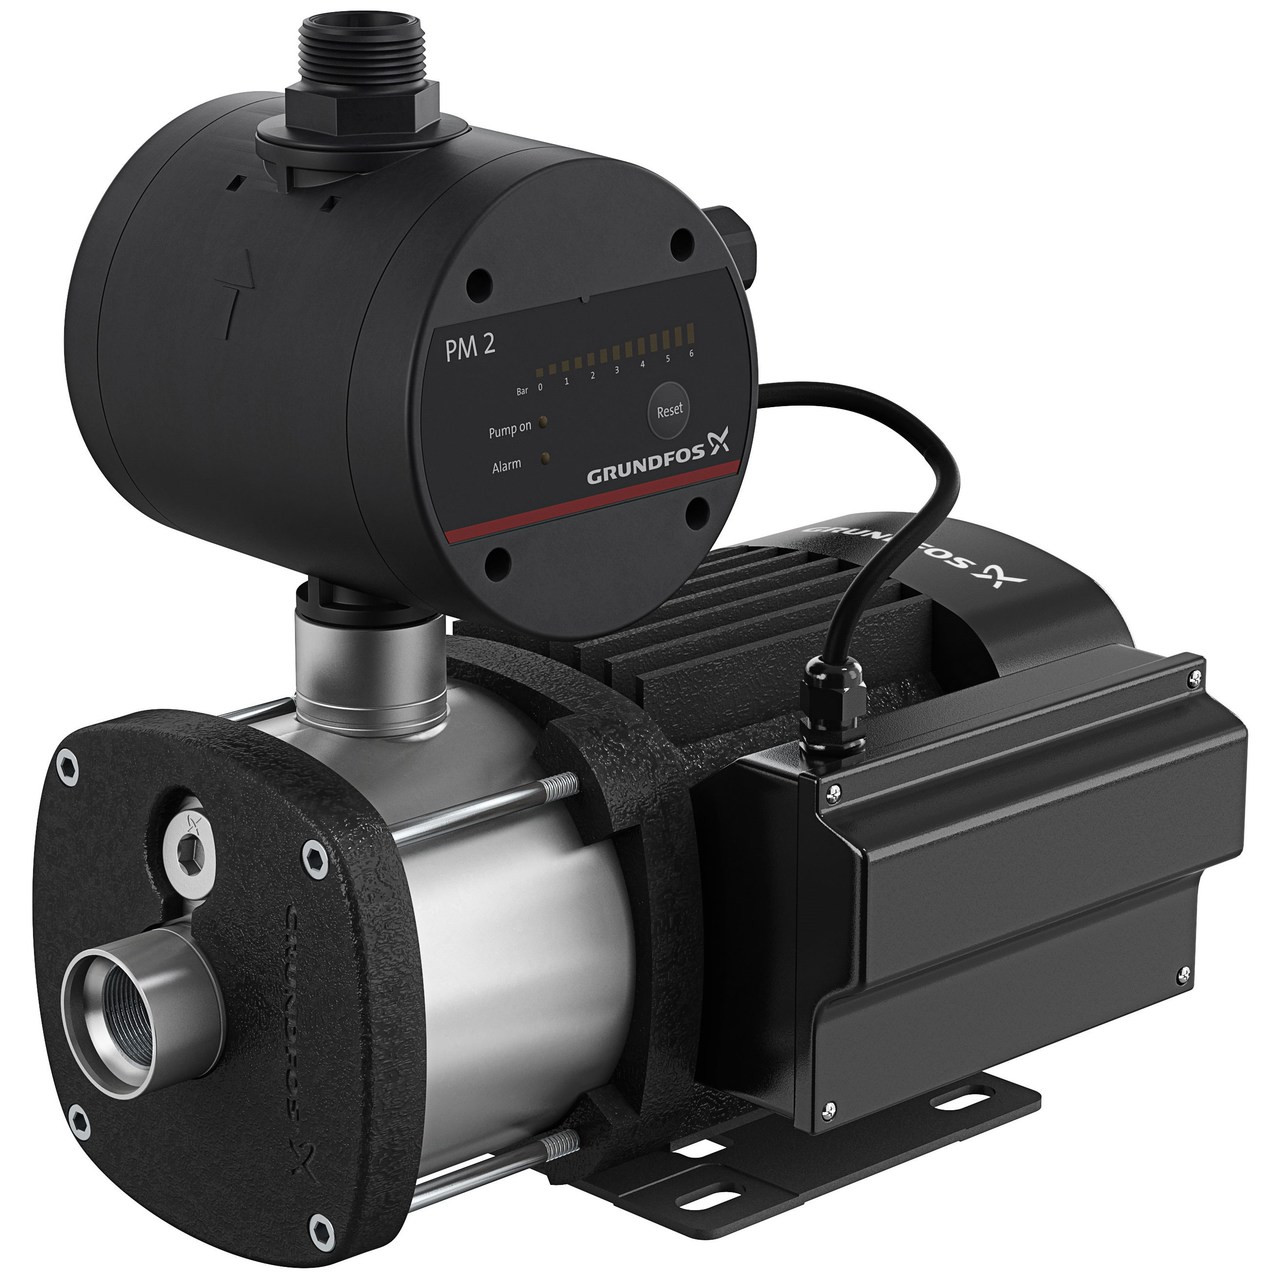 Grundfos CMB-SP 5-28 Single Phase Automatic Pressure Pump, PM2 Controller with stainless steel pump end and run-dry protection. 66 L/Min @ 210 kPa. (0.50 kW)